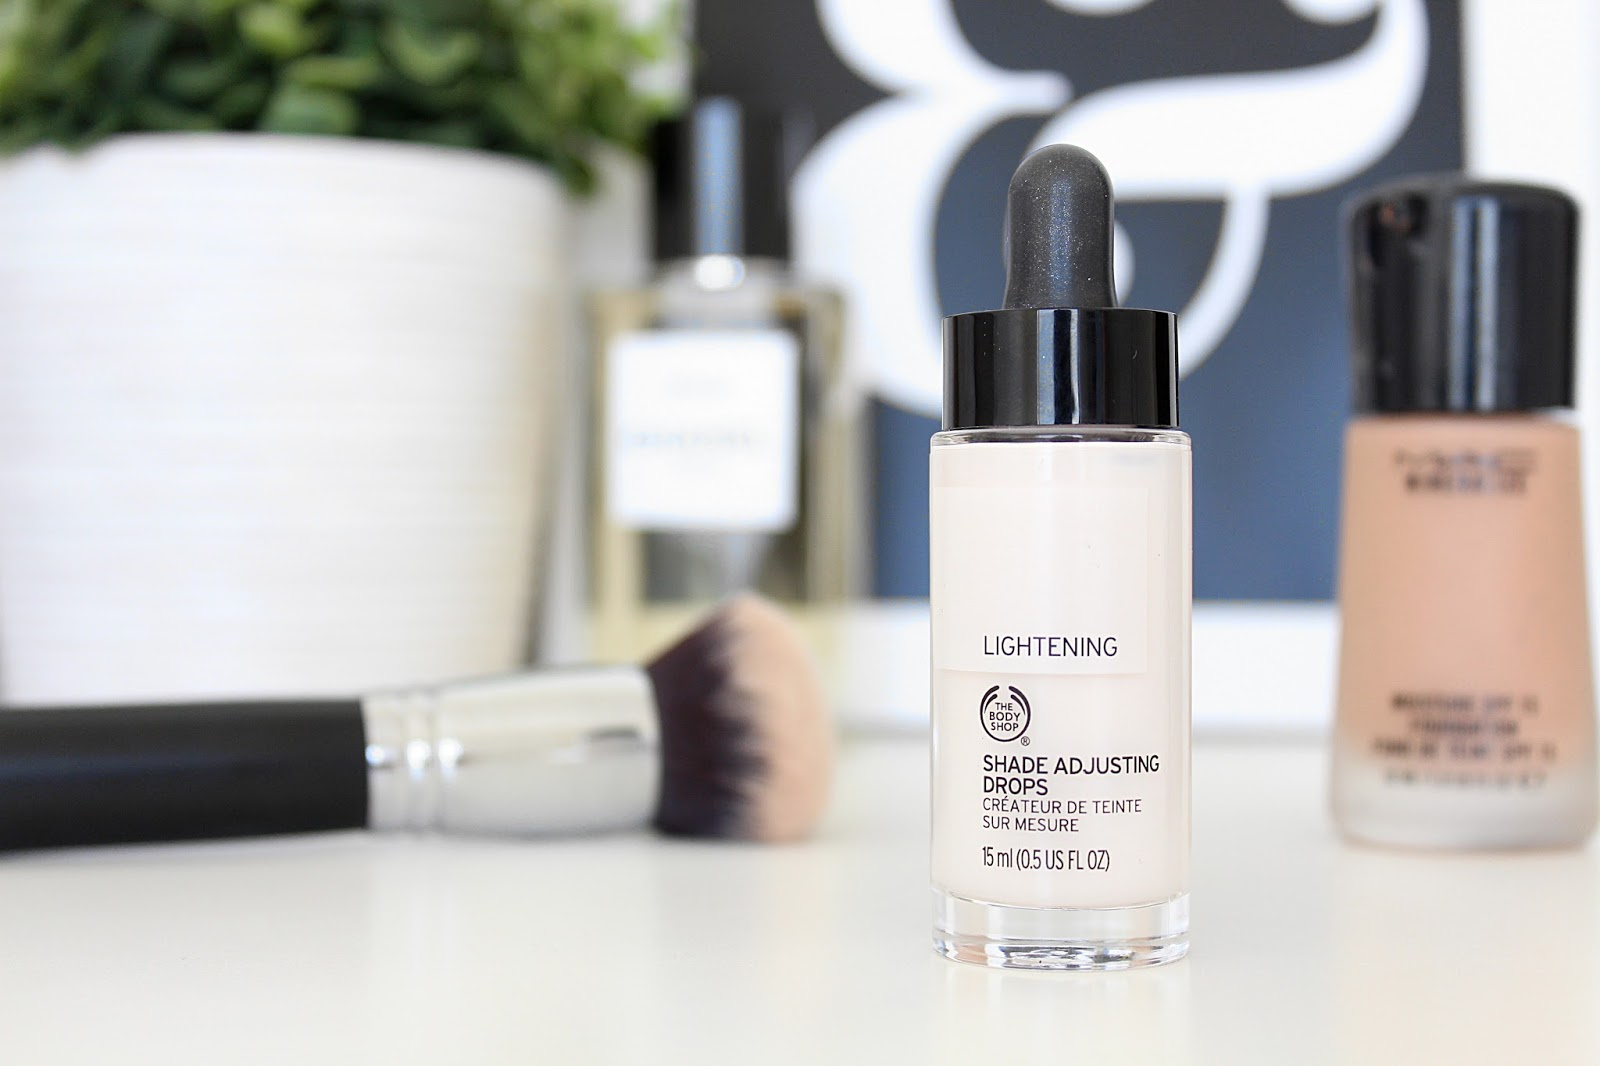 The Body Shop Lightening Shade Adjusting Drops Review - Create Your Perfect Foundation Shade